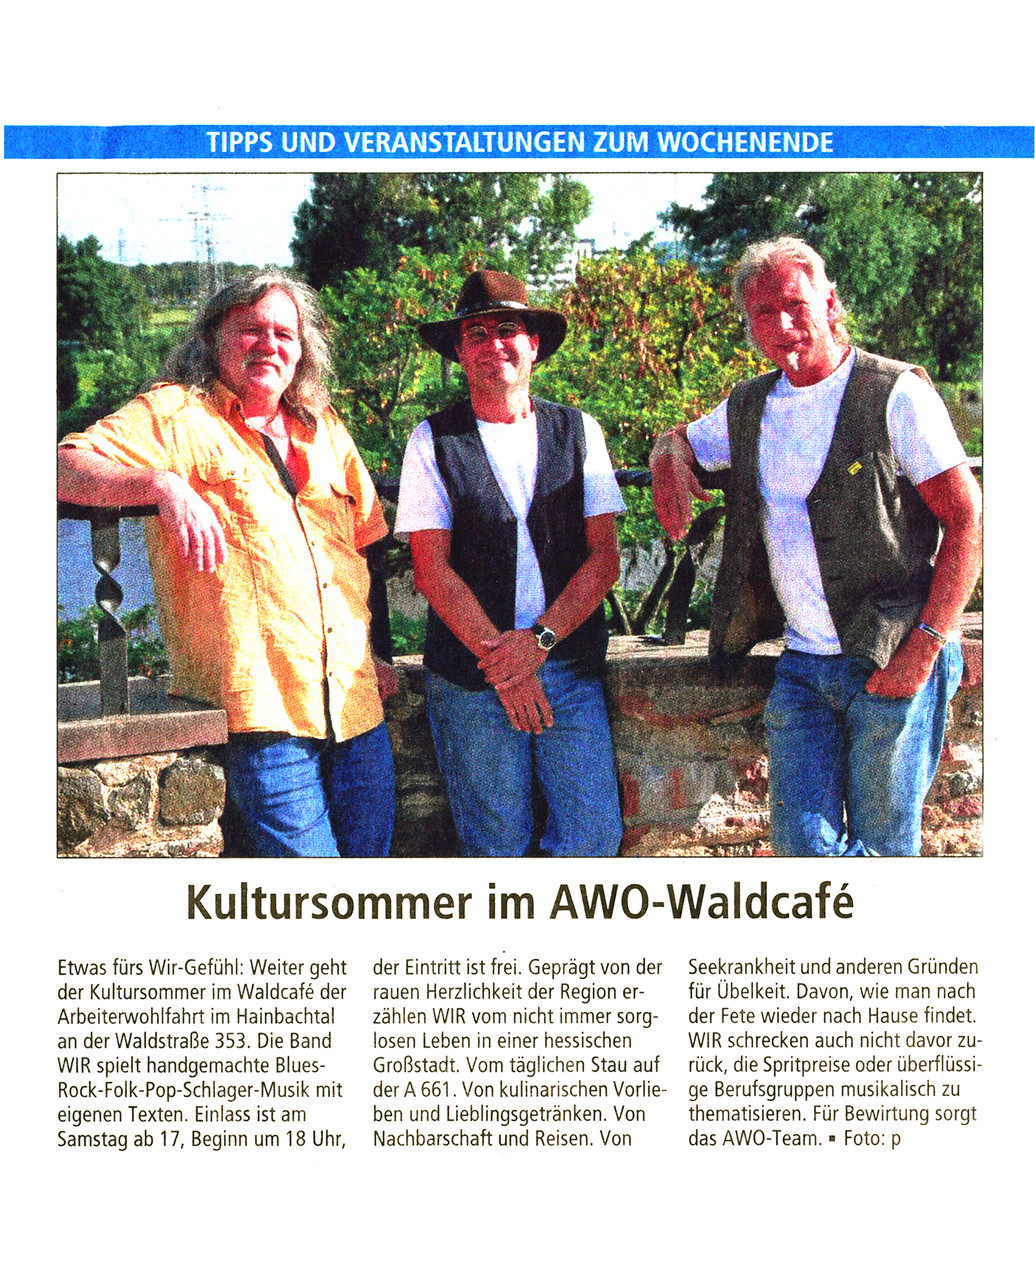 Offenbach Post, 7. August 2015